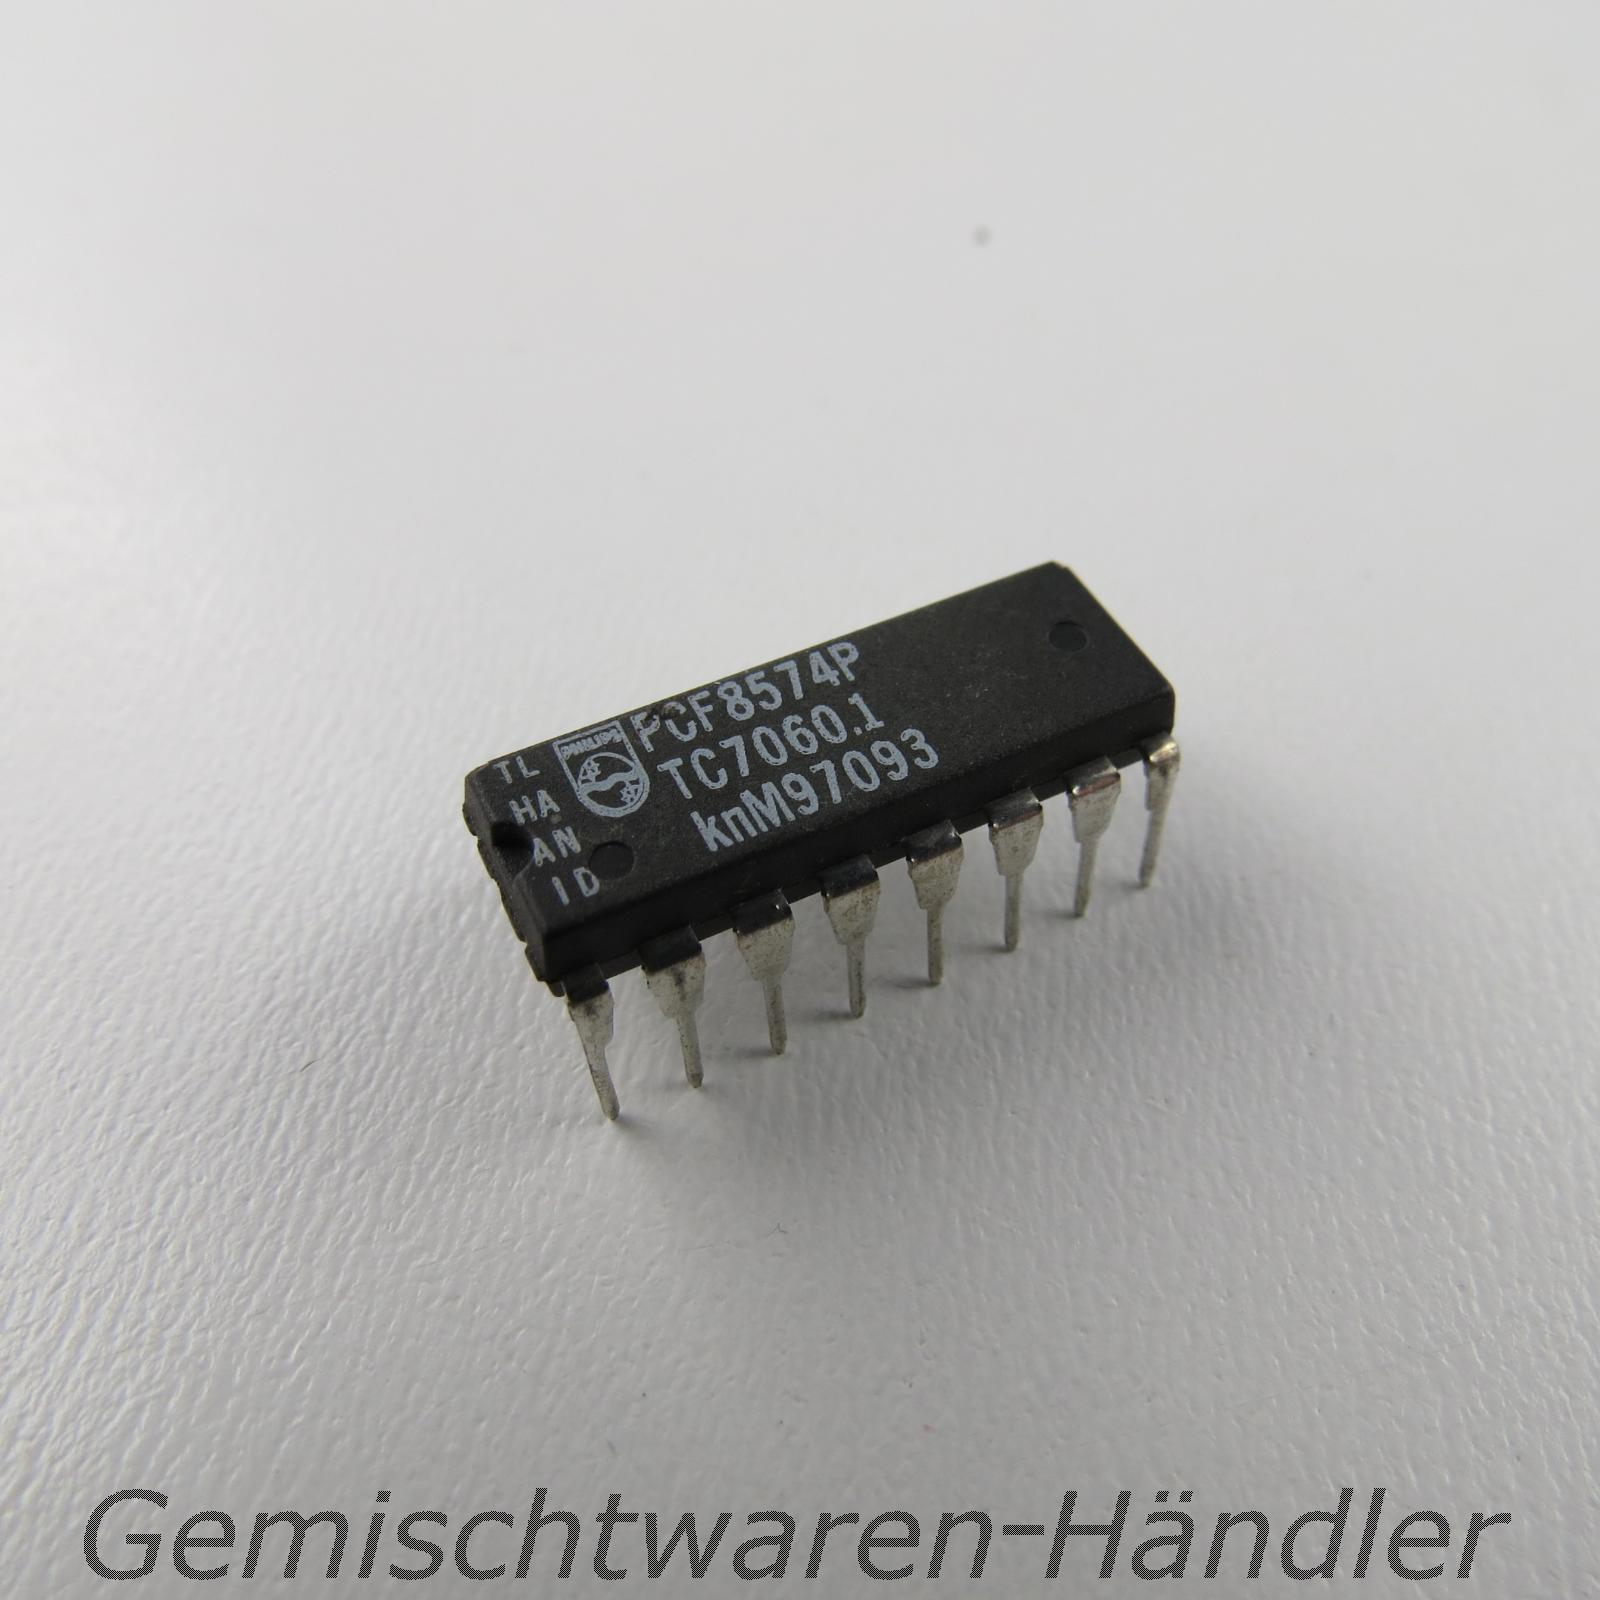 I2C-IIC-I-C-PCF8574-P-Portexpander-DiL-DIP-8-Bit-I-O-Exp-Philips-PCF8574P-16